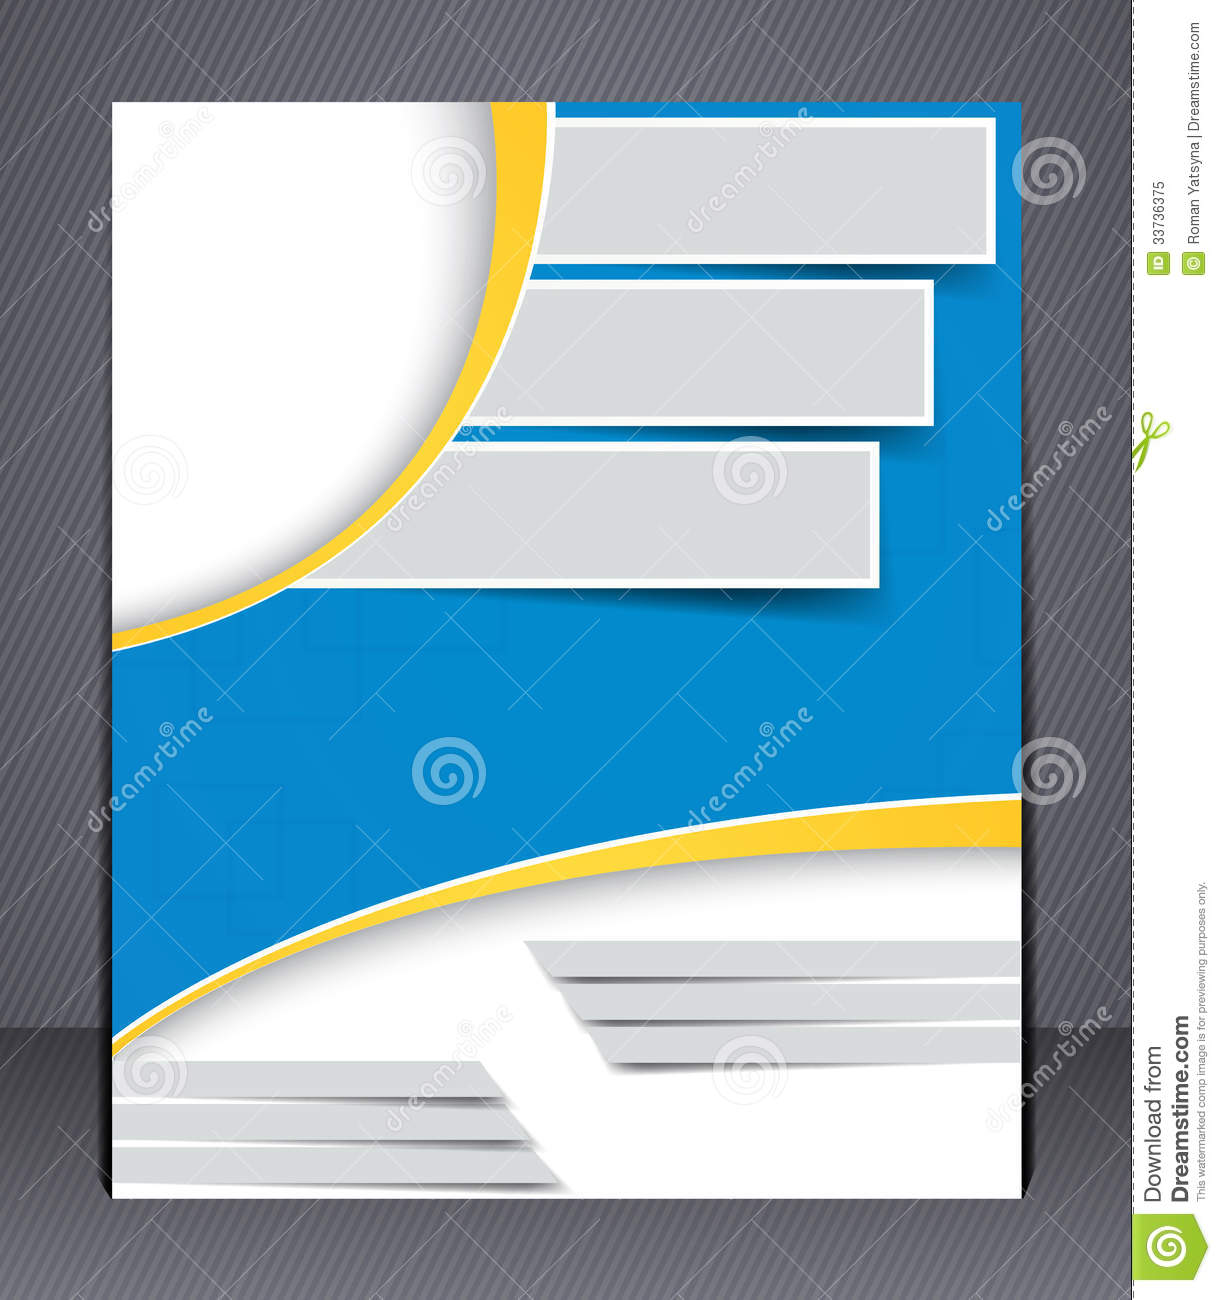 Brochure Design In Blue And Yellow Colors Royalty Free Stock Photo ...